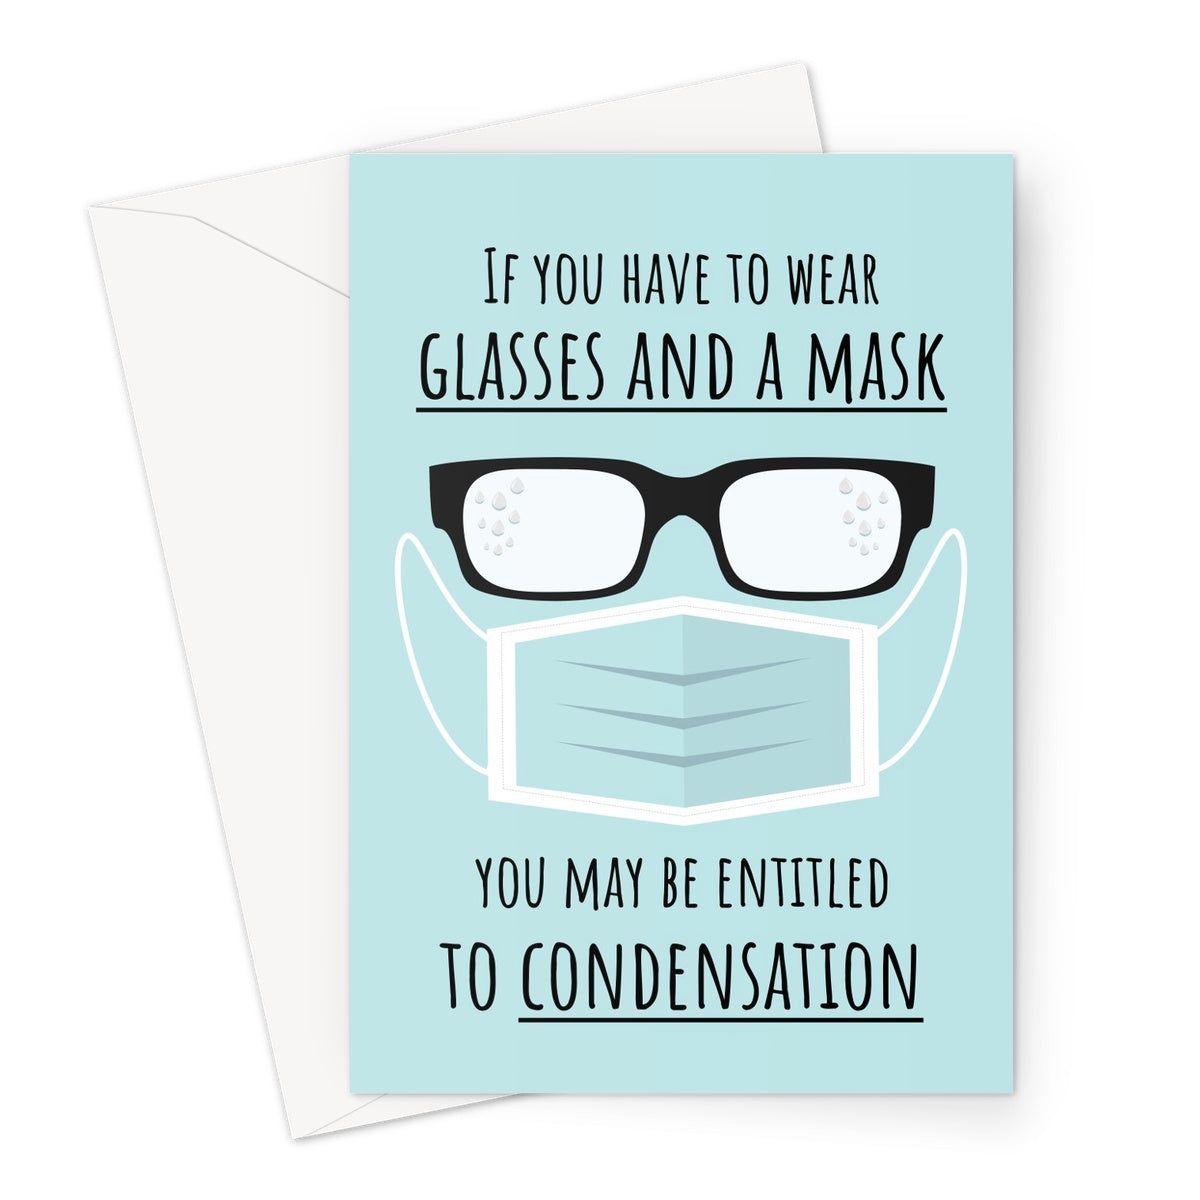 If You Have to Wear Glasses and a Mask You May Be Entitled to Condensation Funny Punny Birthday Anniversary Foggy Glasses Problems Pandemic Corona Virus Hands Face Space 2020 Greeting Card